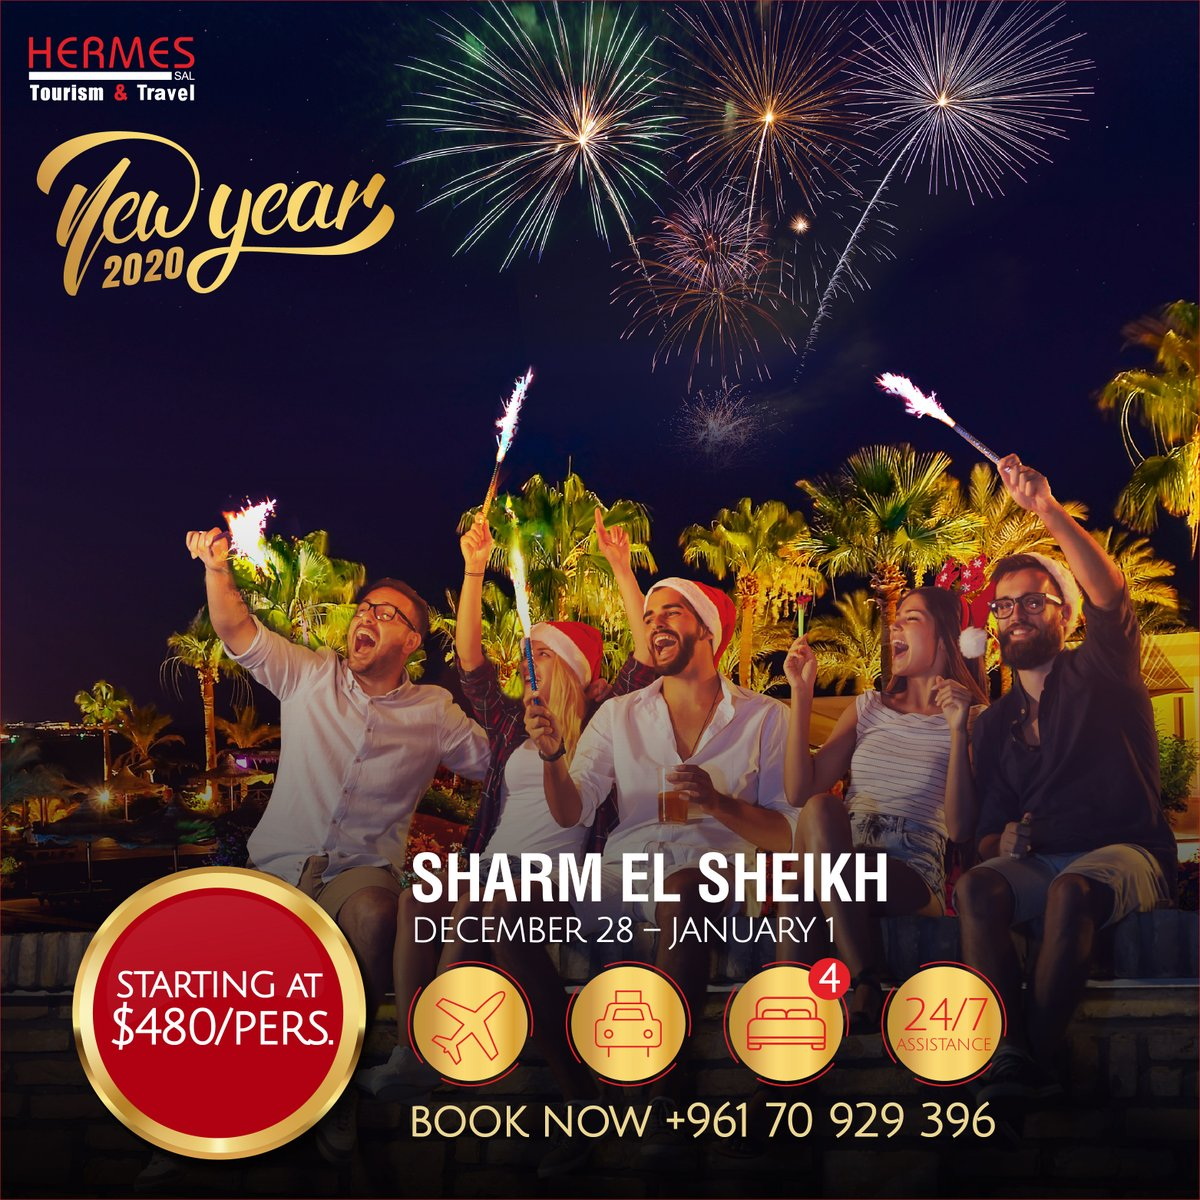 Spend a wonderful New Year's Eve in Sharm El Sheikh! For booking, contact us on info@hermestravel.com.lb or 00961 70 929396 or 00961 1 426380/1/2